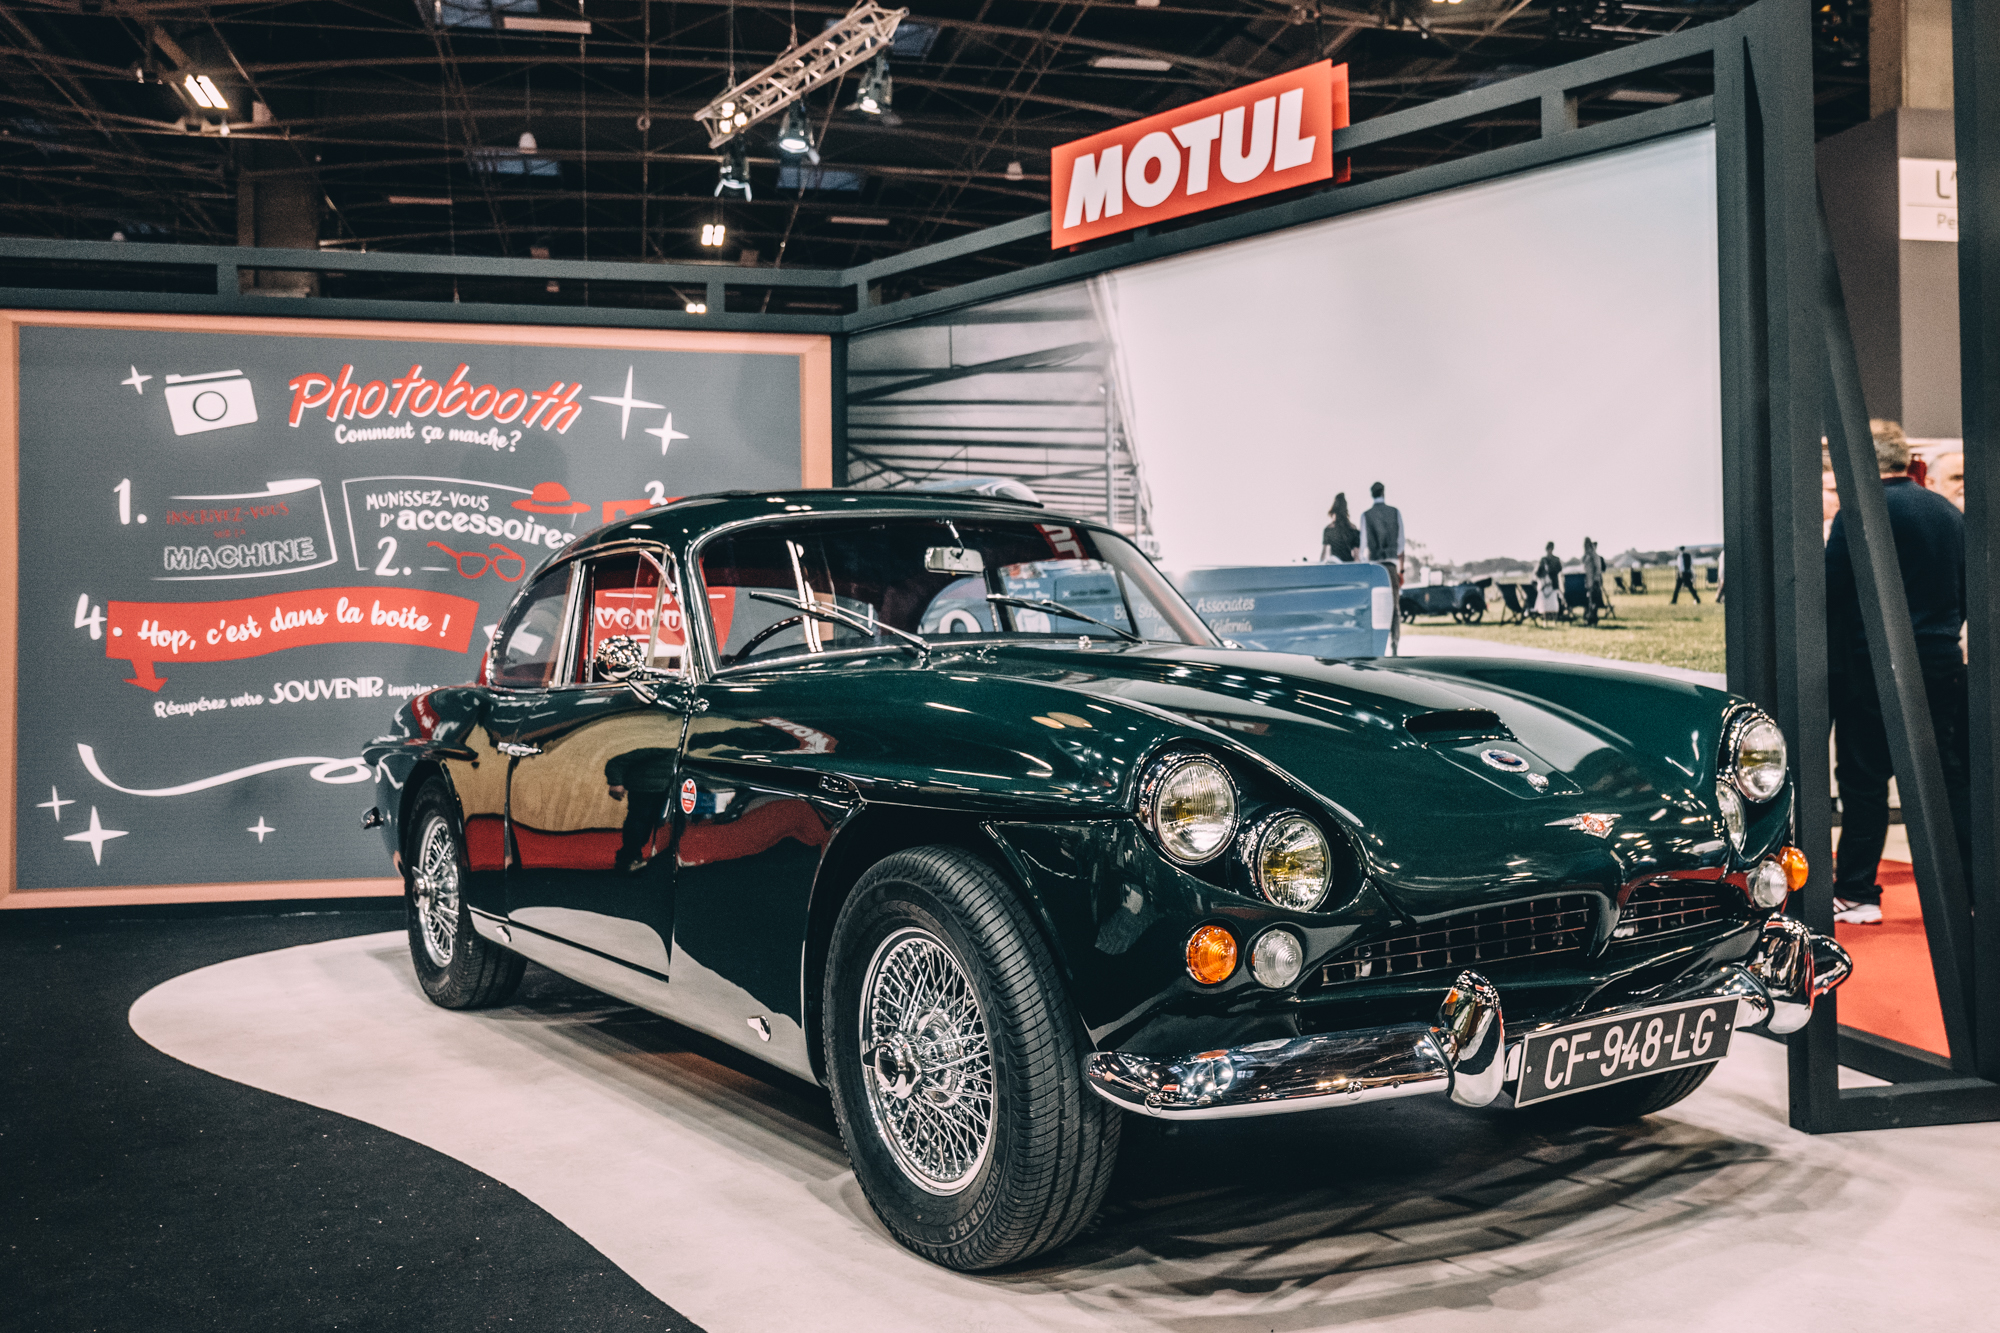 DISCOVER THE FIVE MECHANICAL WONDERS OF RÉTROMOBILE